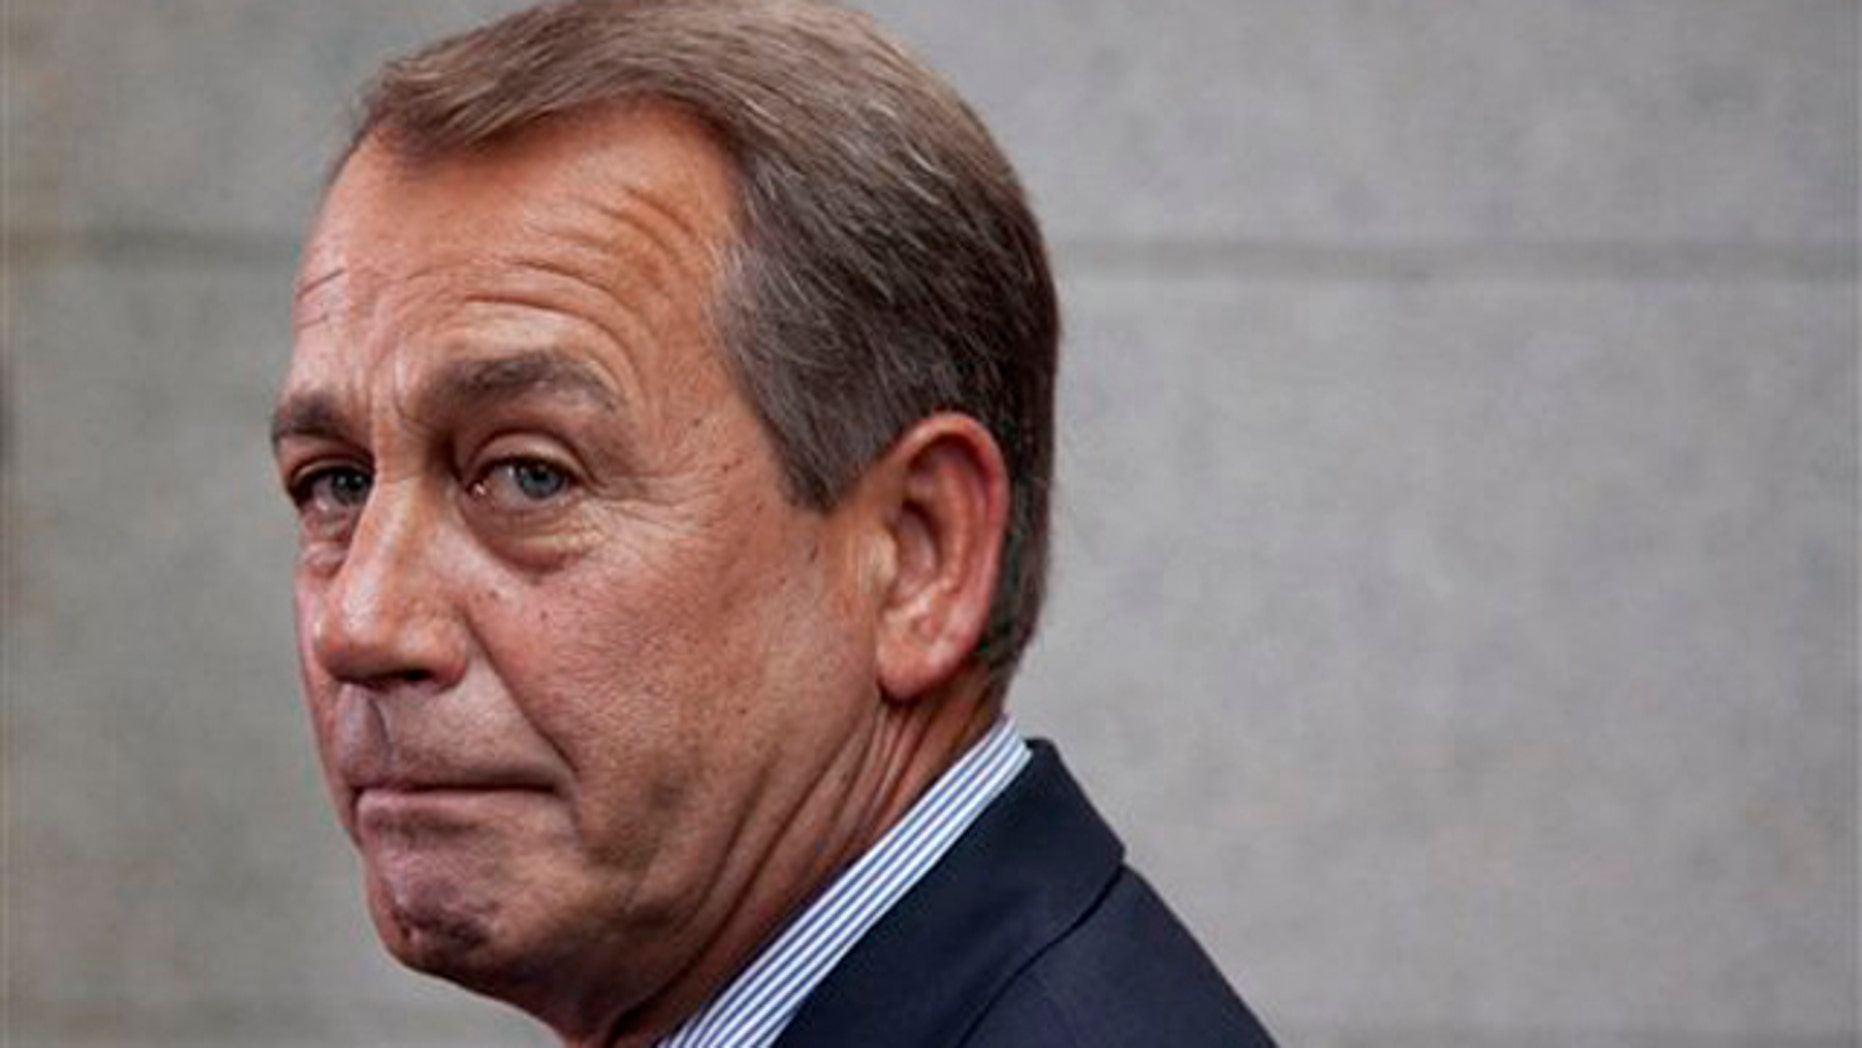 House Speaker John Boehner makes a statement after a Republican caucus meeting on Capitol Hill Sept. 8.